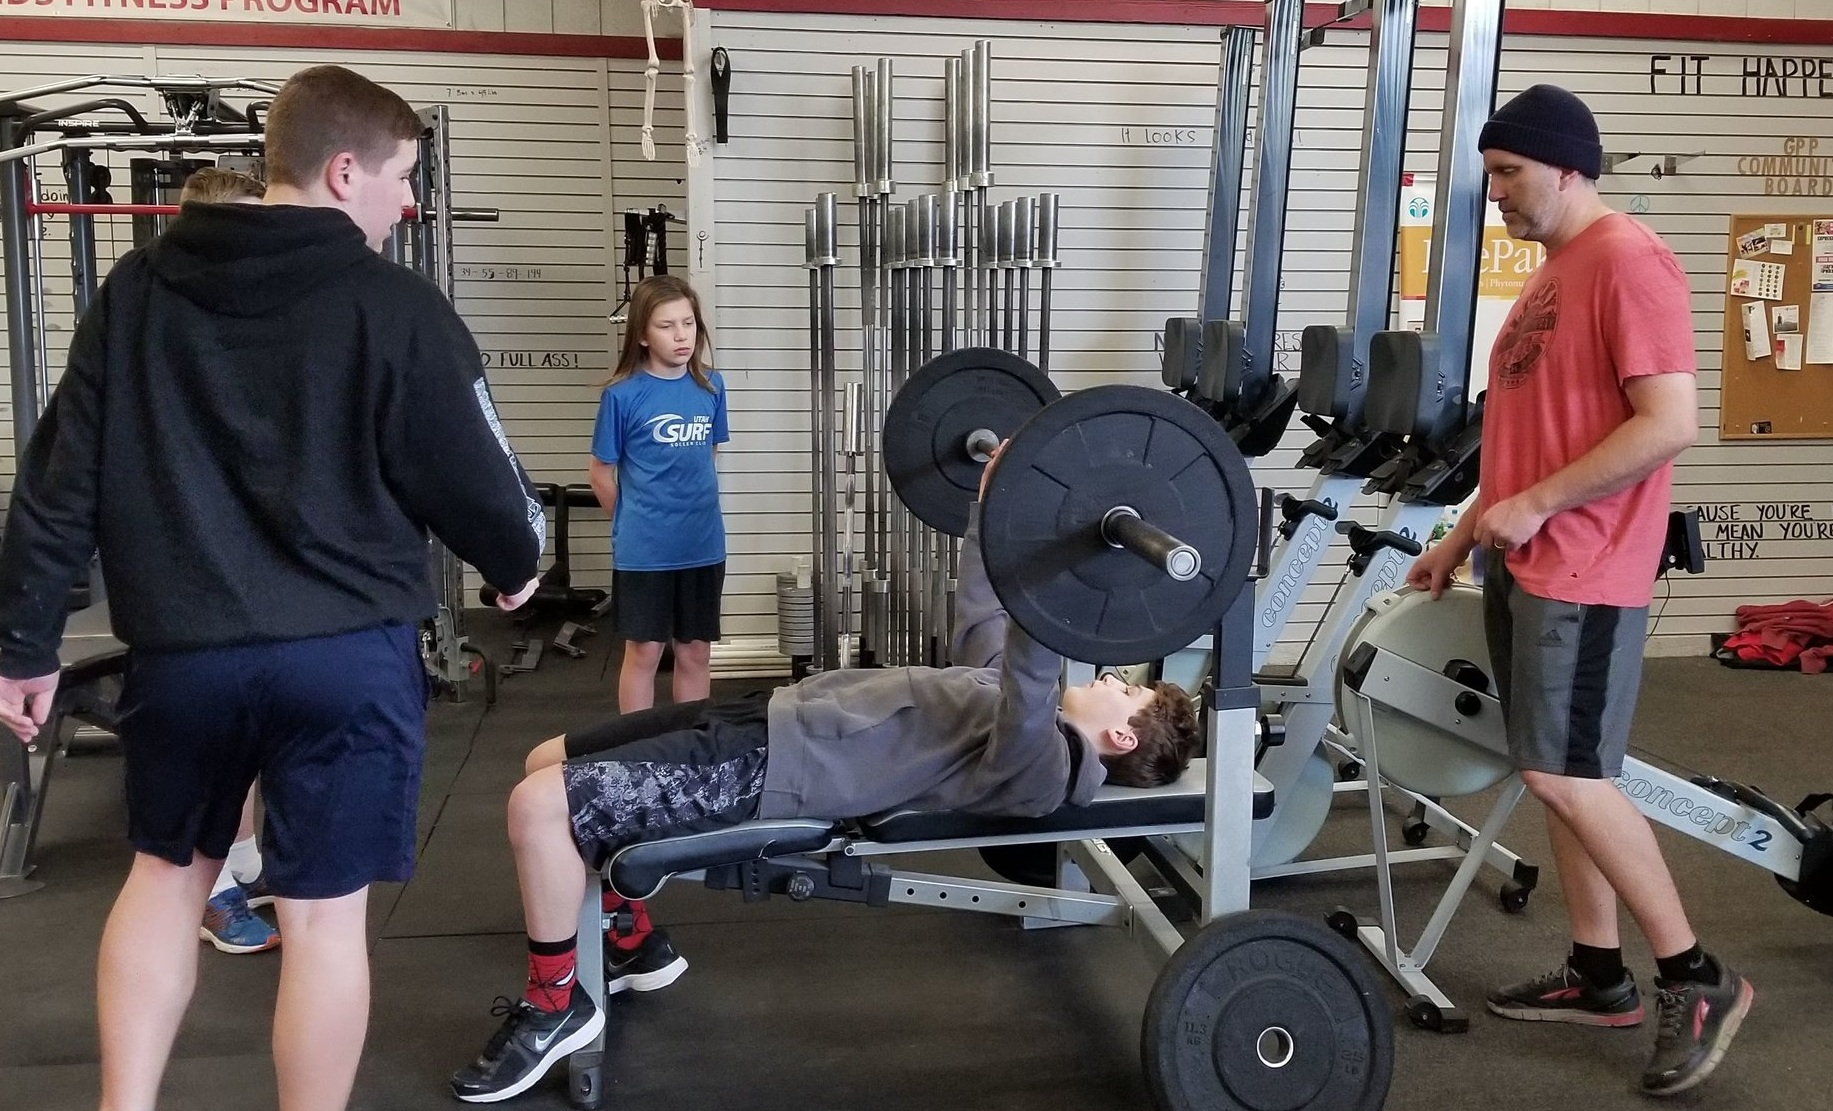 Saturday is international bench press day! Bring your boys/girls and get your pump on!